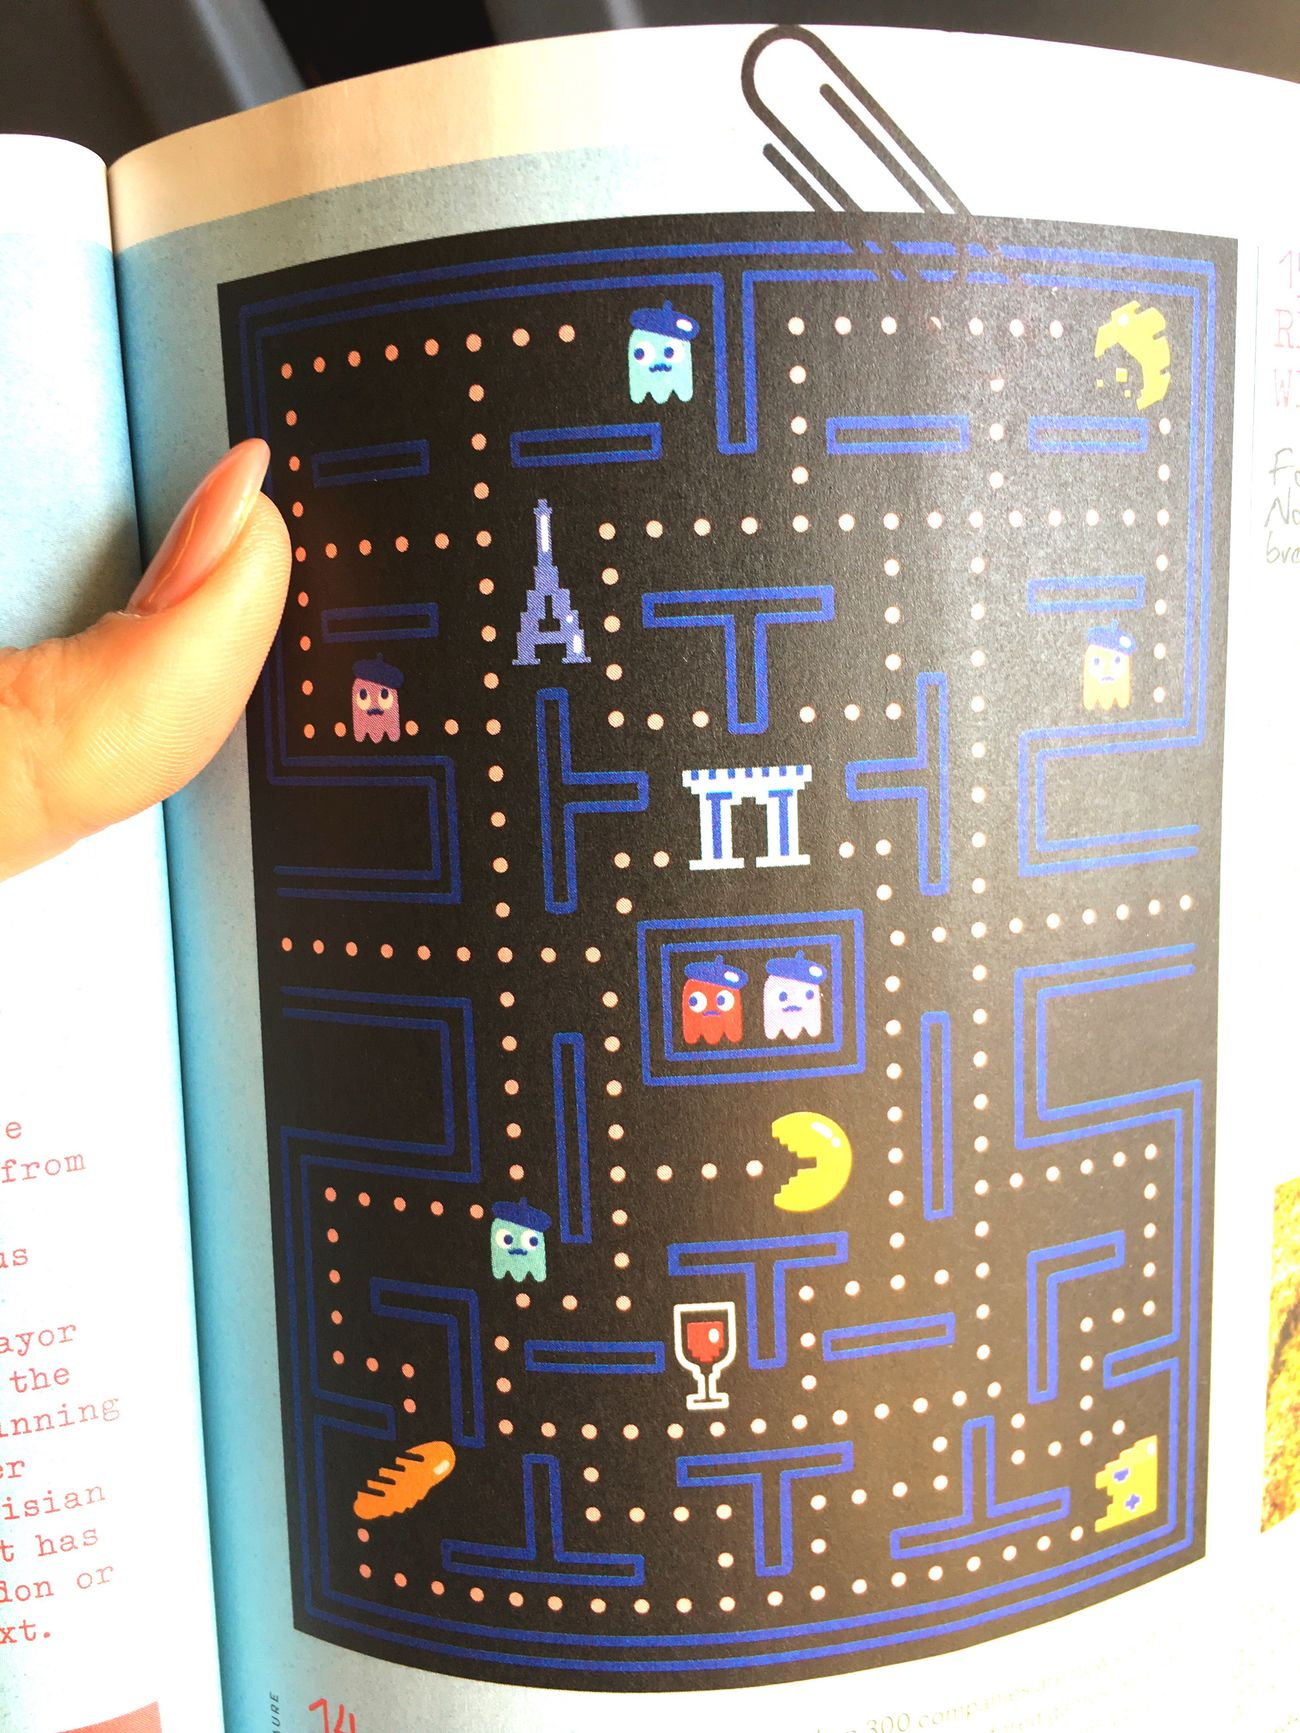 Human Hand Human Body Part One Person Holding Technology Close-up Adults Only Complexity Indoors  Touch Screen People Day One Man Only Adult Pacman Paris France